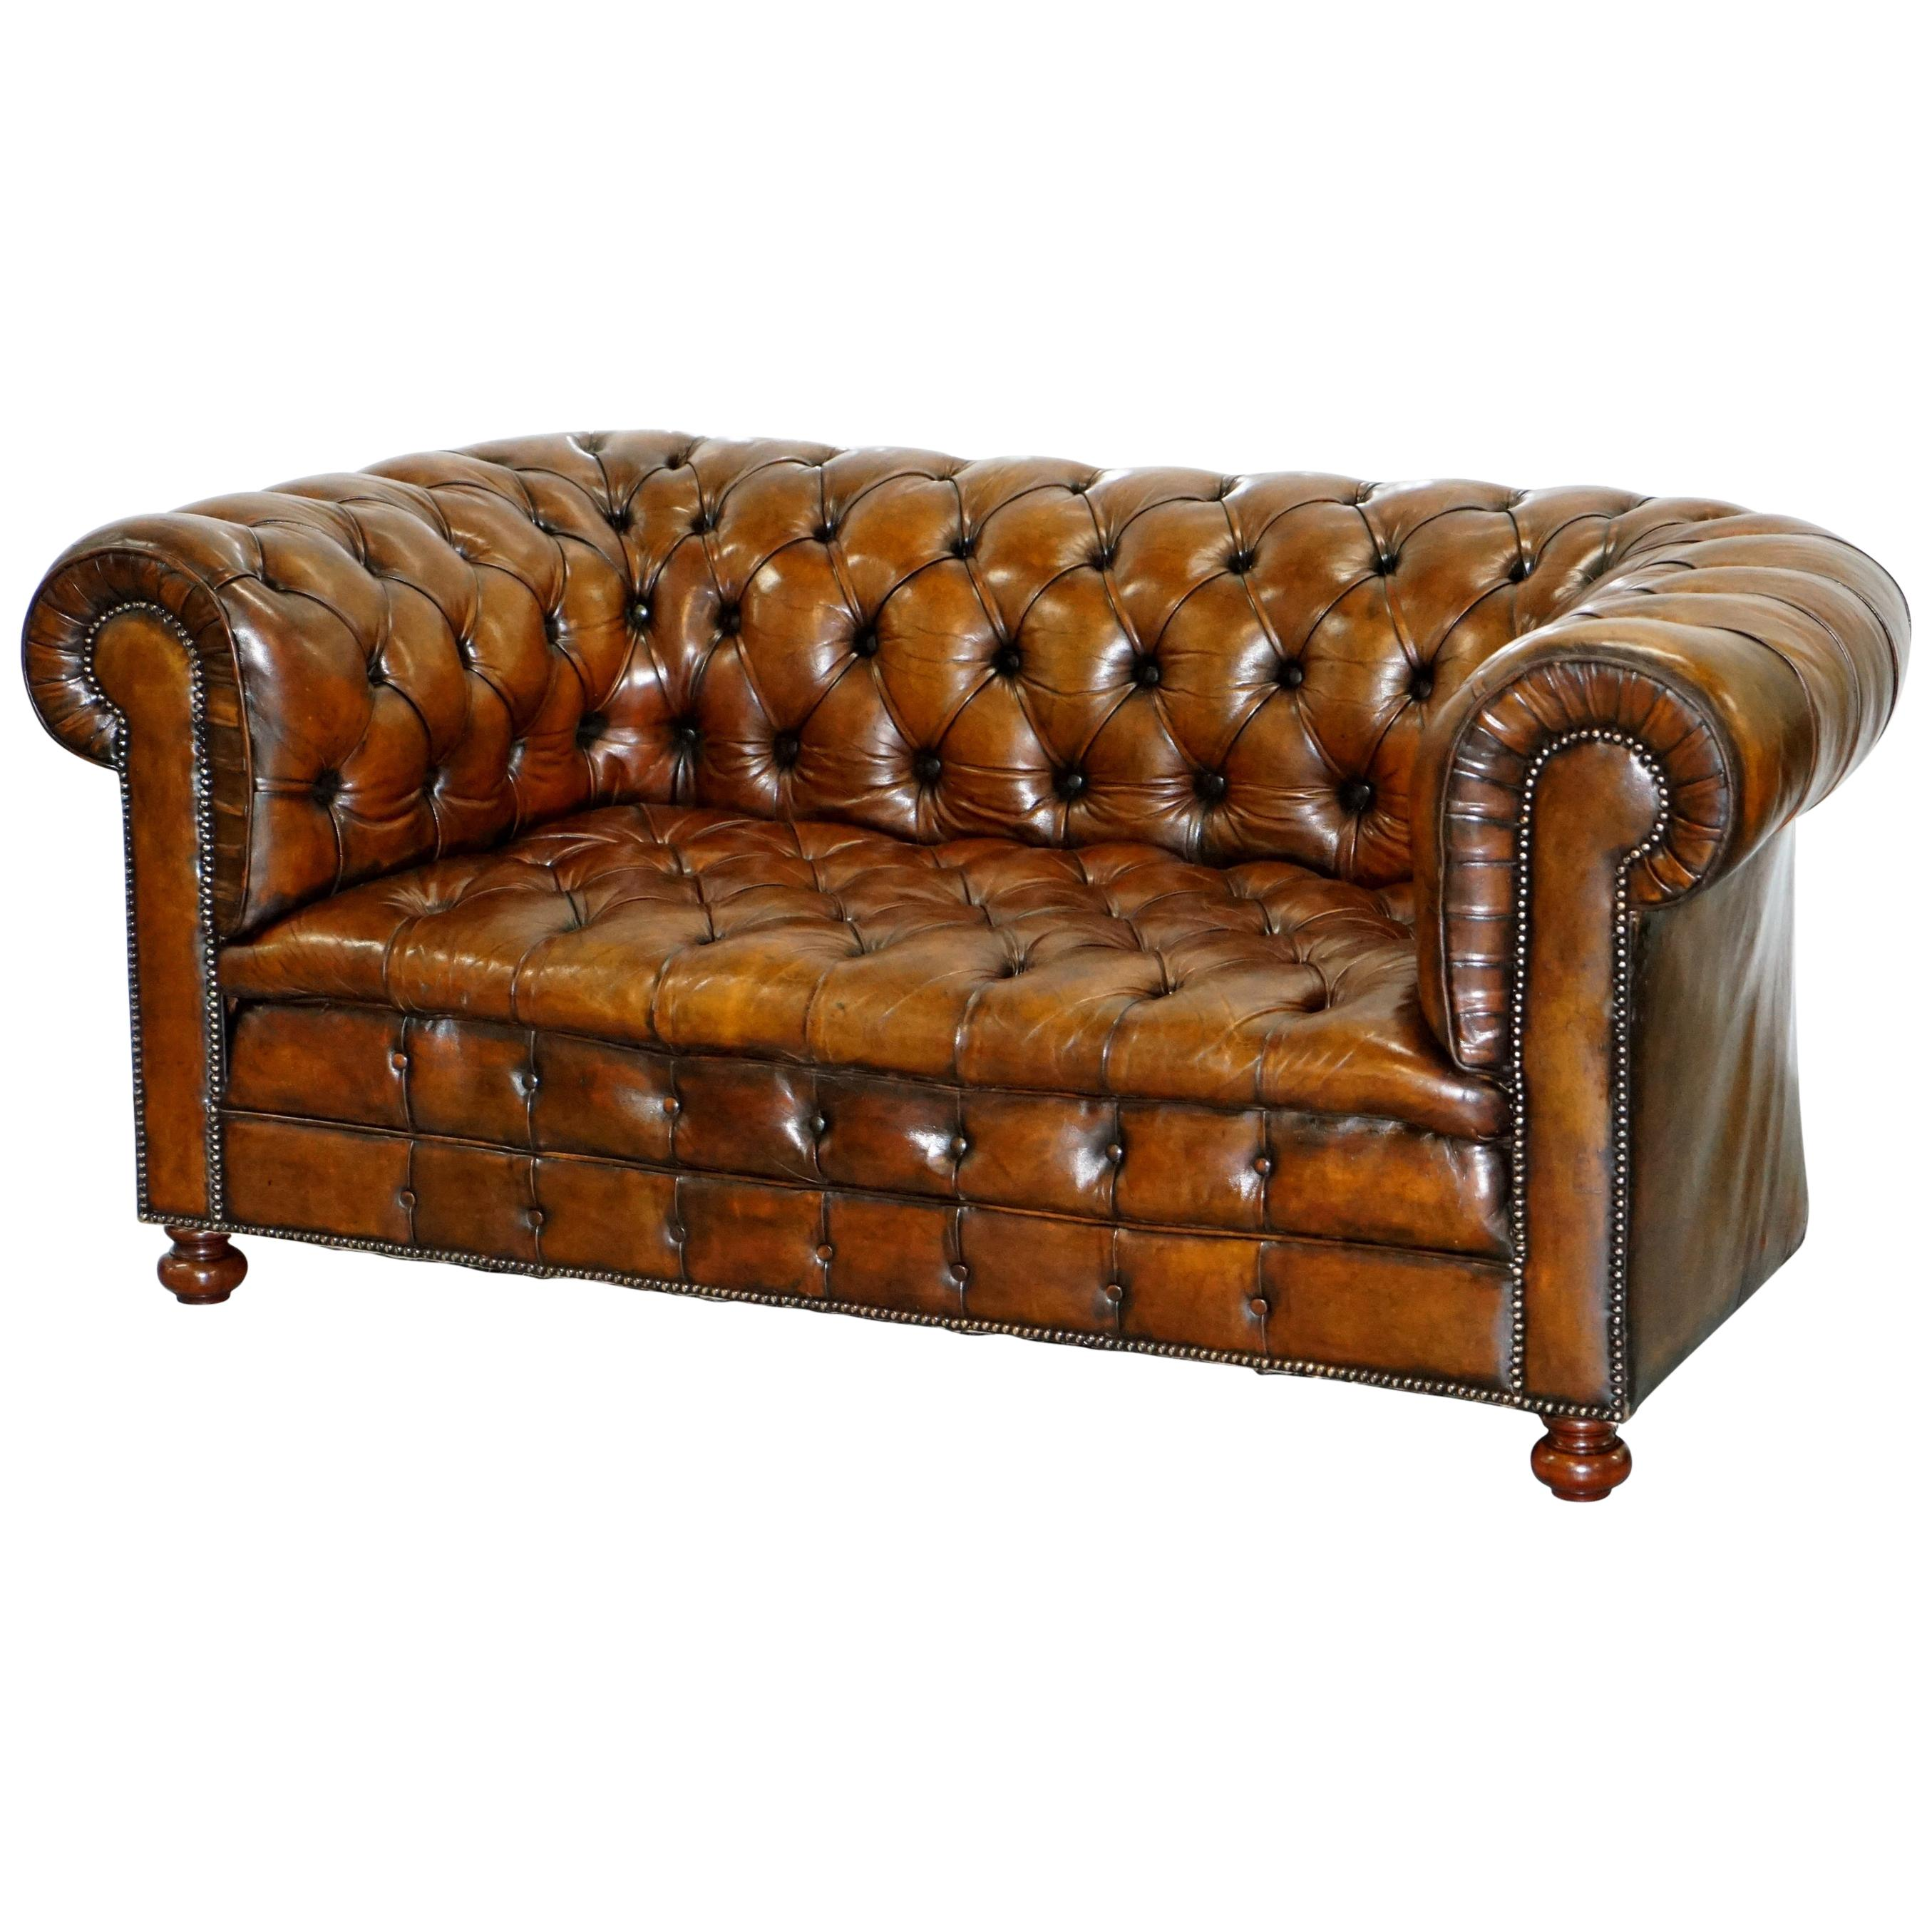 Restored 1900s Chesterfield Buttoned Hand Dyed Brown Leather Sofa Horse Hair